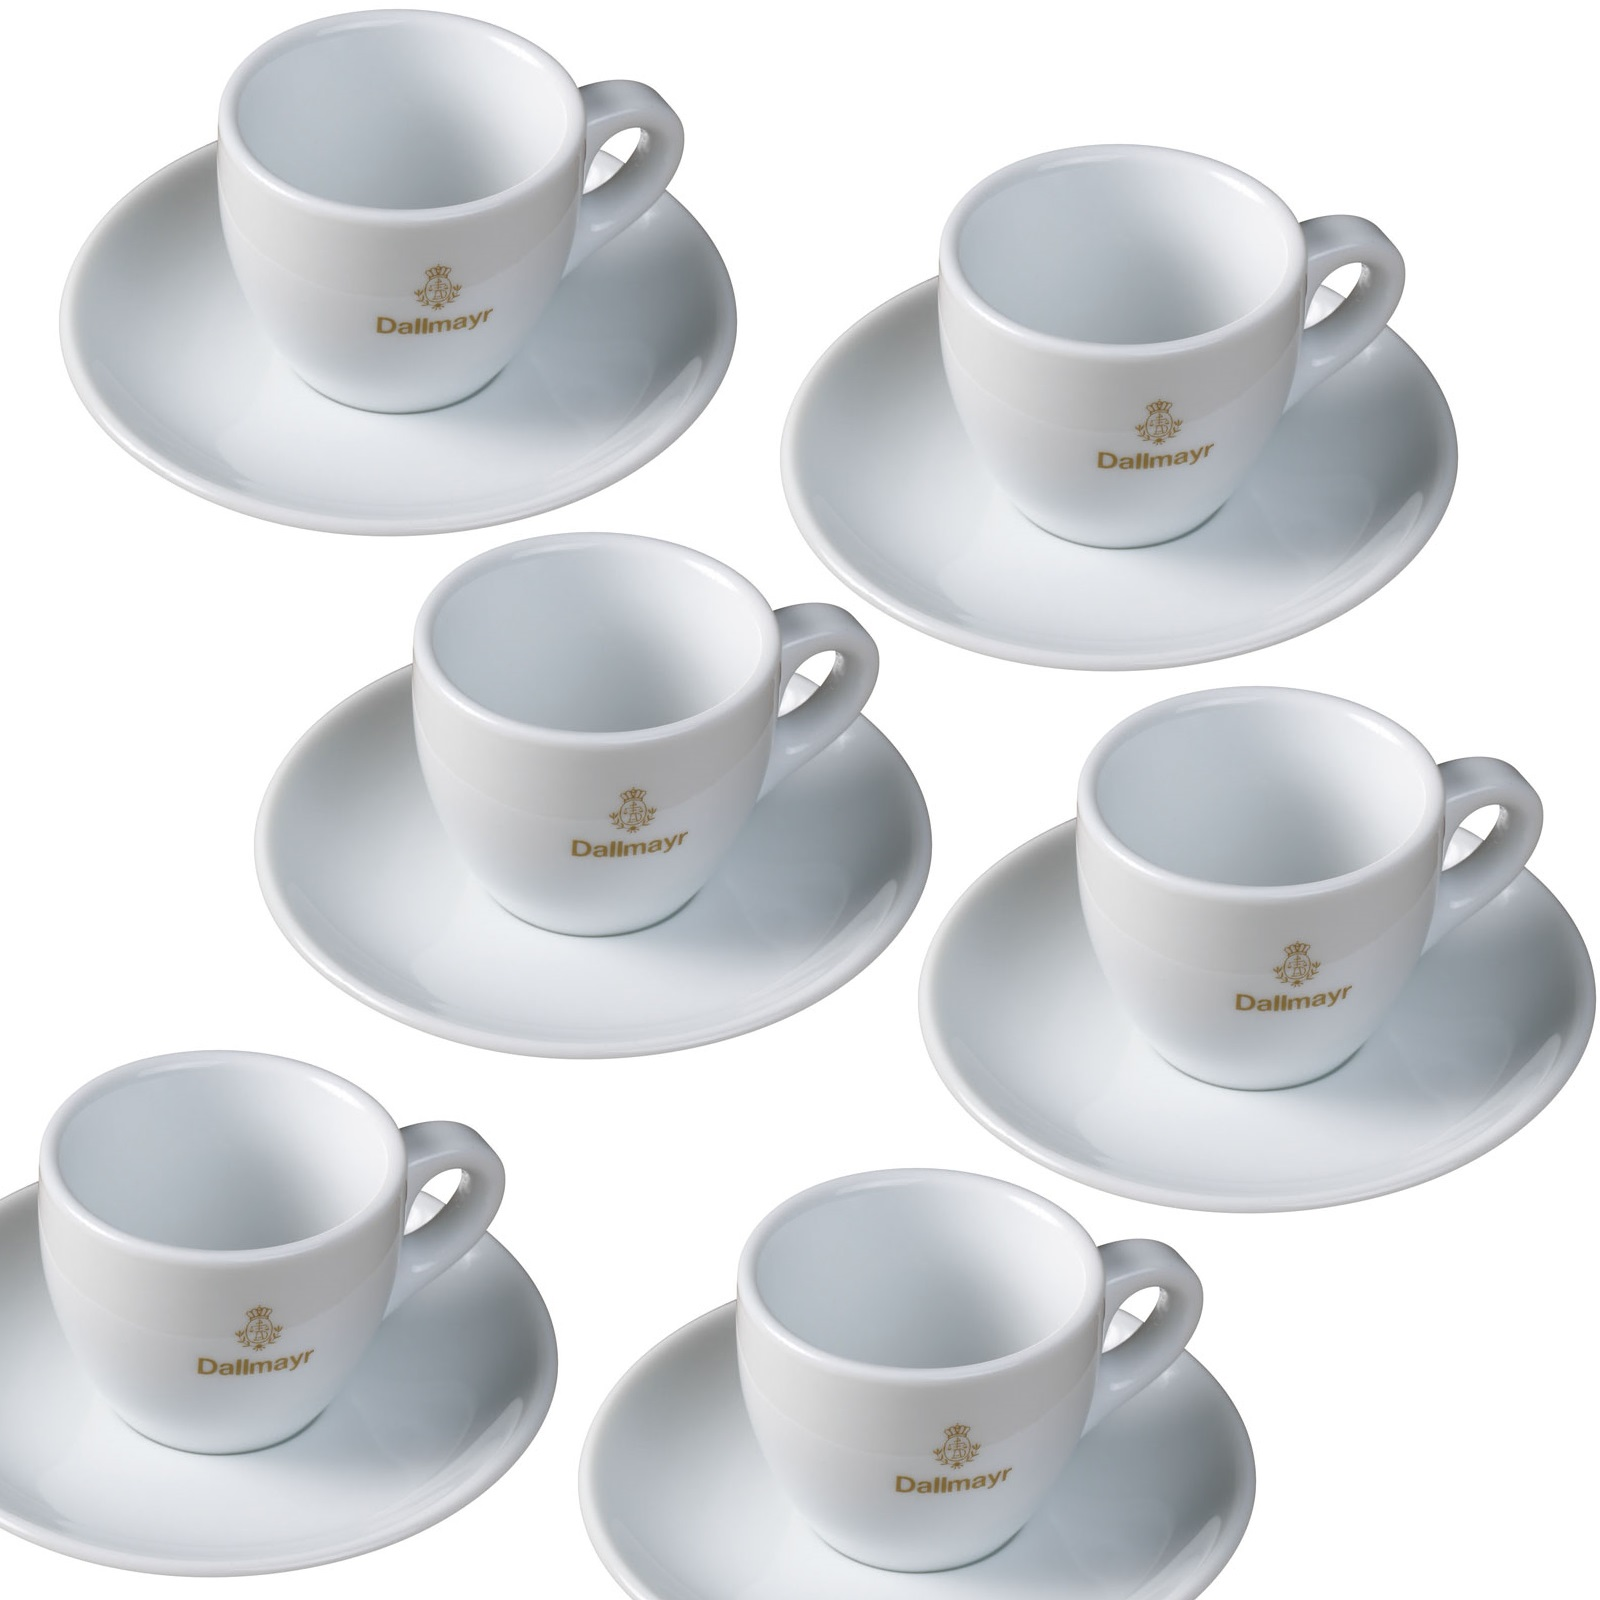 dallmayr espresso tasse inklusive untertasse 6er set bestehend aus espressotasse 0 08l mit. Black Bedroom Furniture Sets. Home Design Ideas